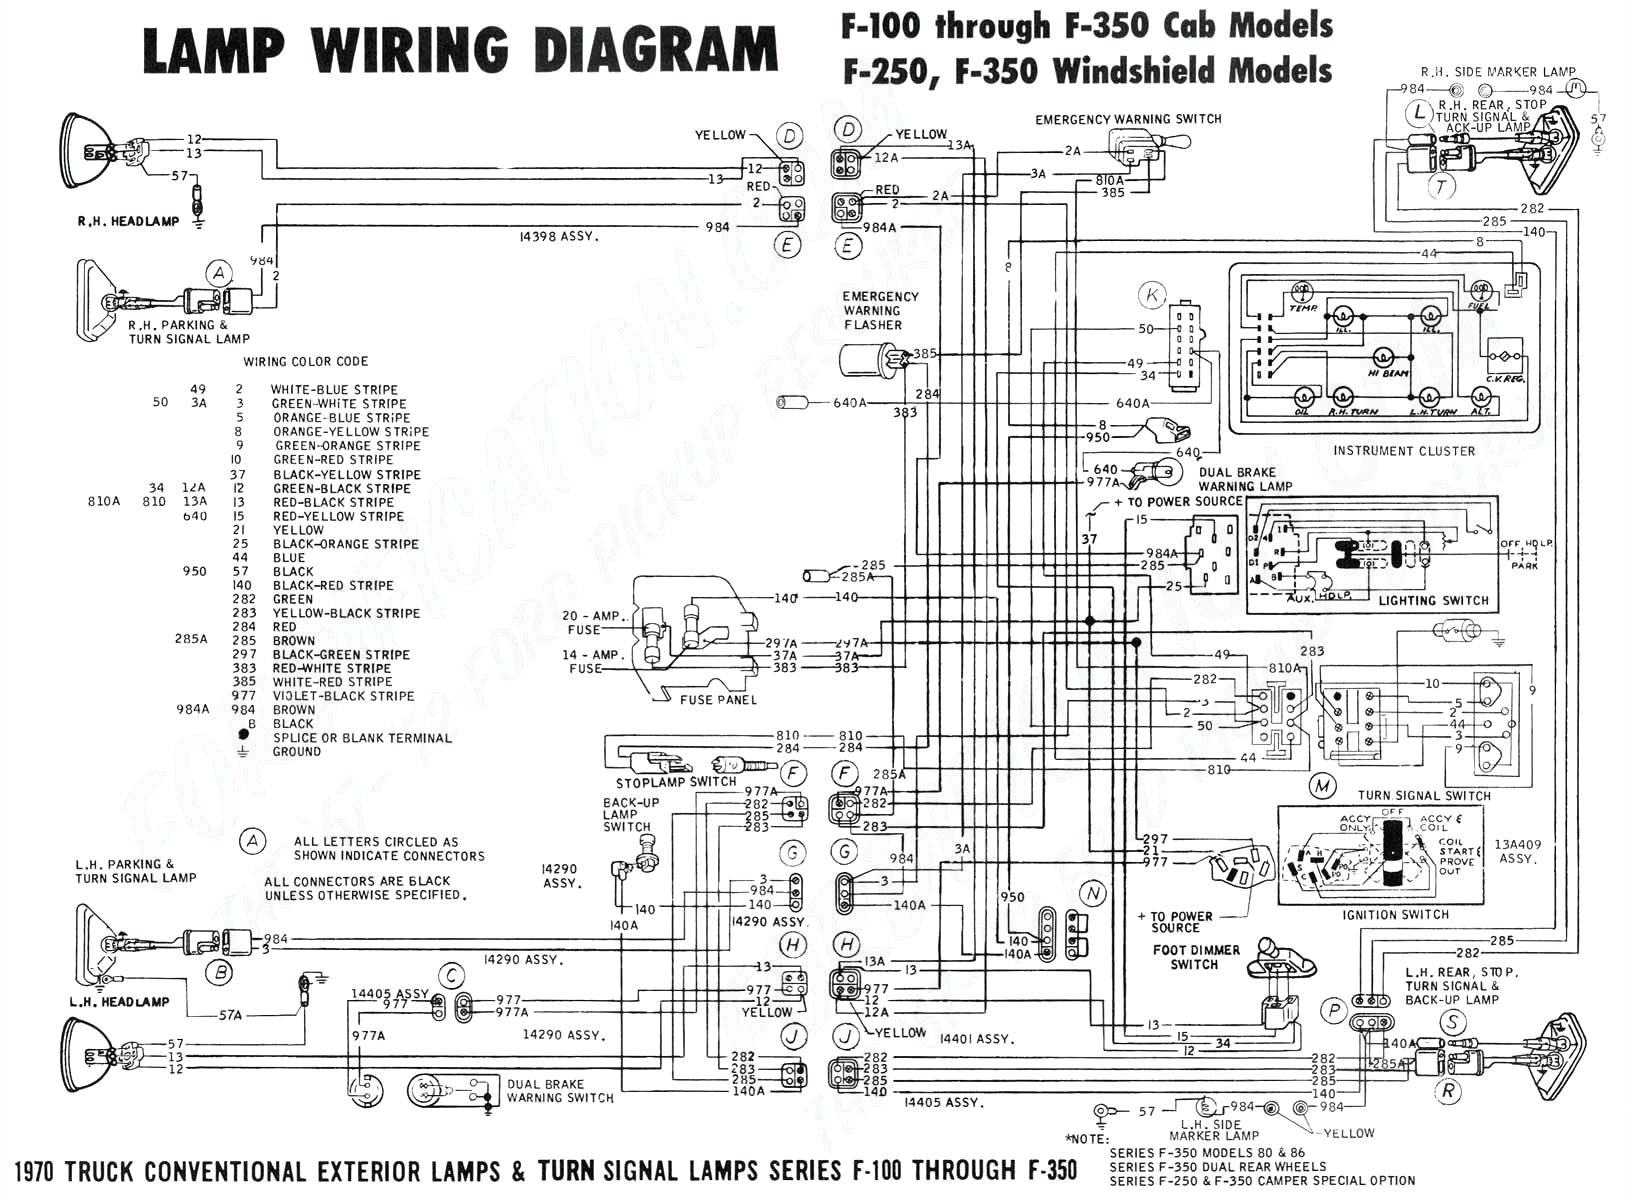 suzuki grand vitara belt diagram furthermore 1996 gmc sierra 1500suzuki grand vitara belt diagram furthermore 1996